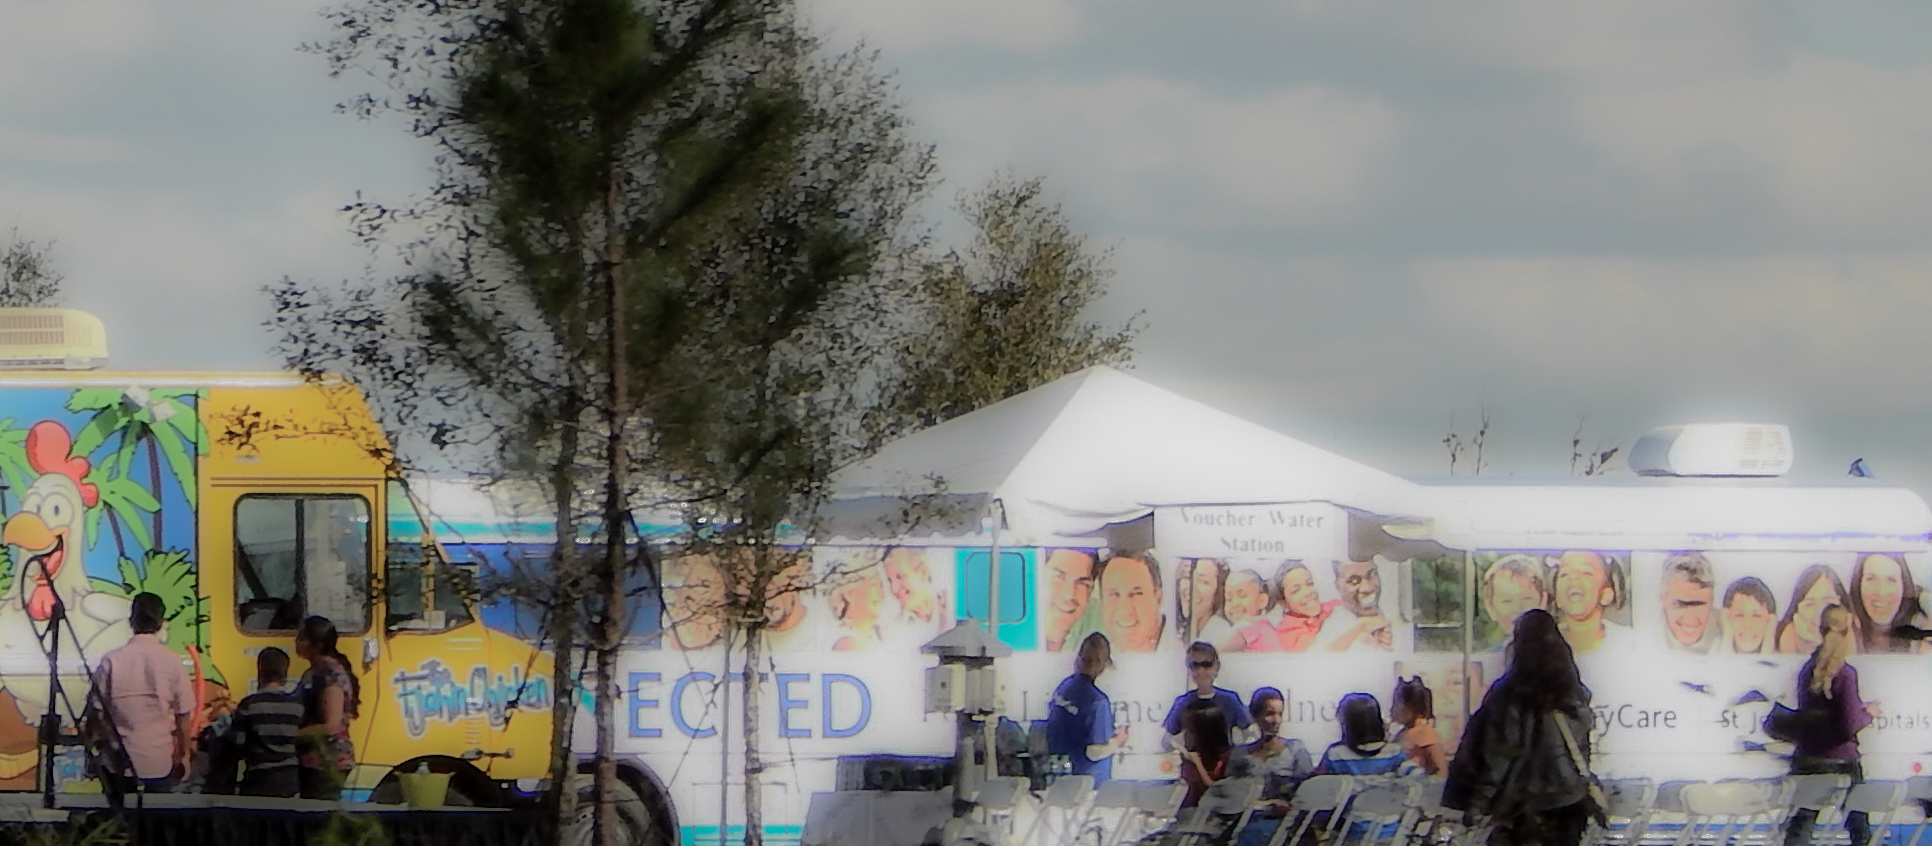 Blurred for privacy: People standing by Chicken Food Truck and at the Water Station at 2015 Open House at St Josephs Hospital-South in Riverview, FL/ 2015 photonews247.comBlurred for privacy: People standing by Chicken Food Truck and at the Water Station at 2015 Open House at St Josephs Hospital-South in Riverview, FL/ 2015 photonews247.com